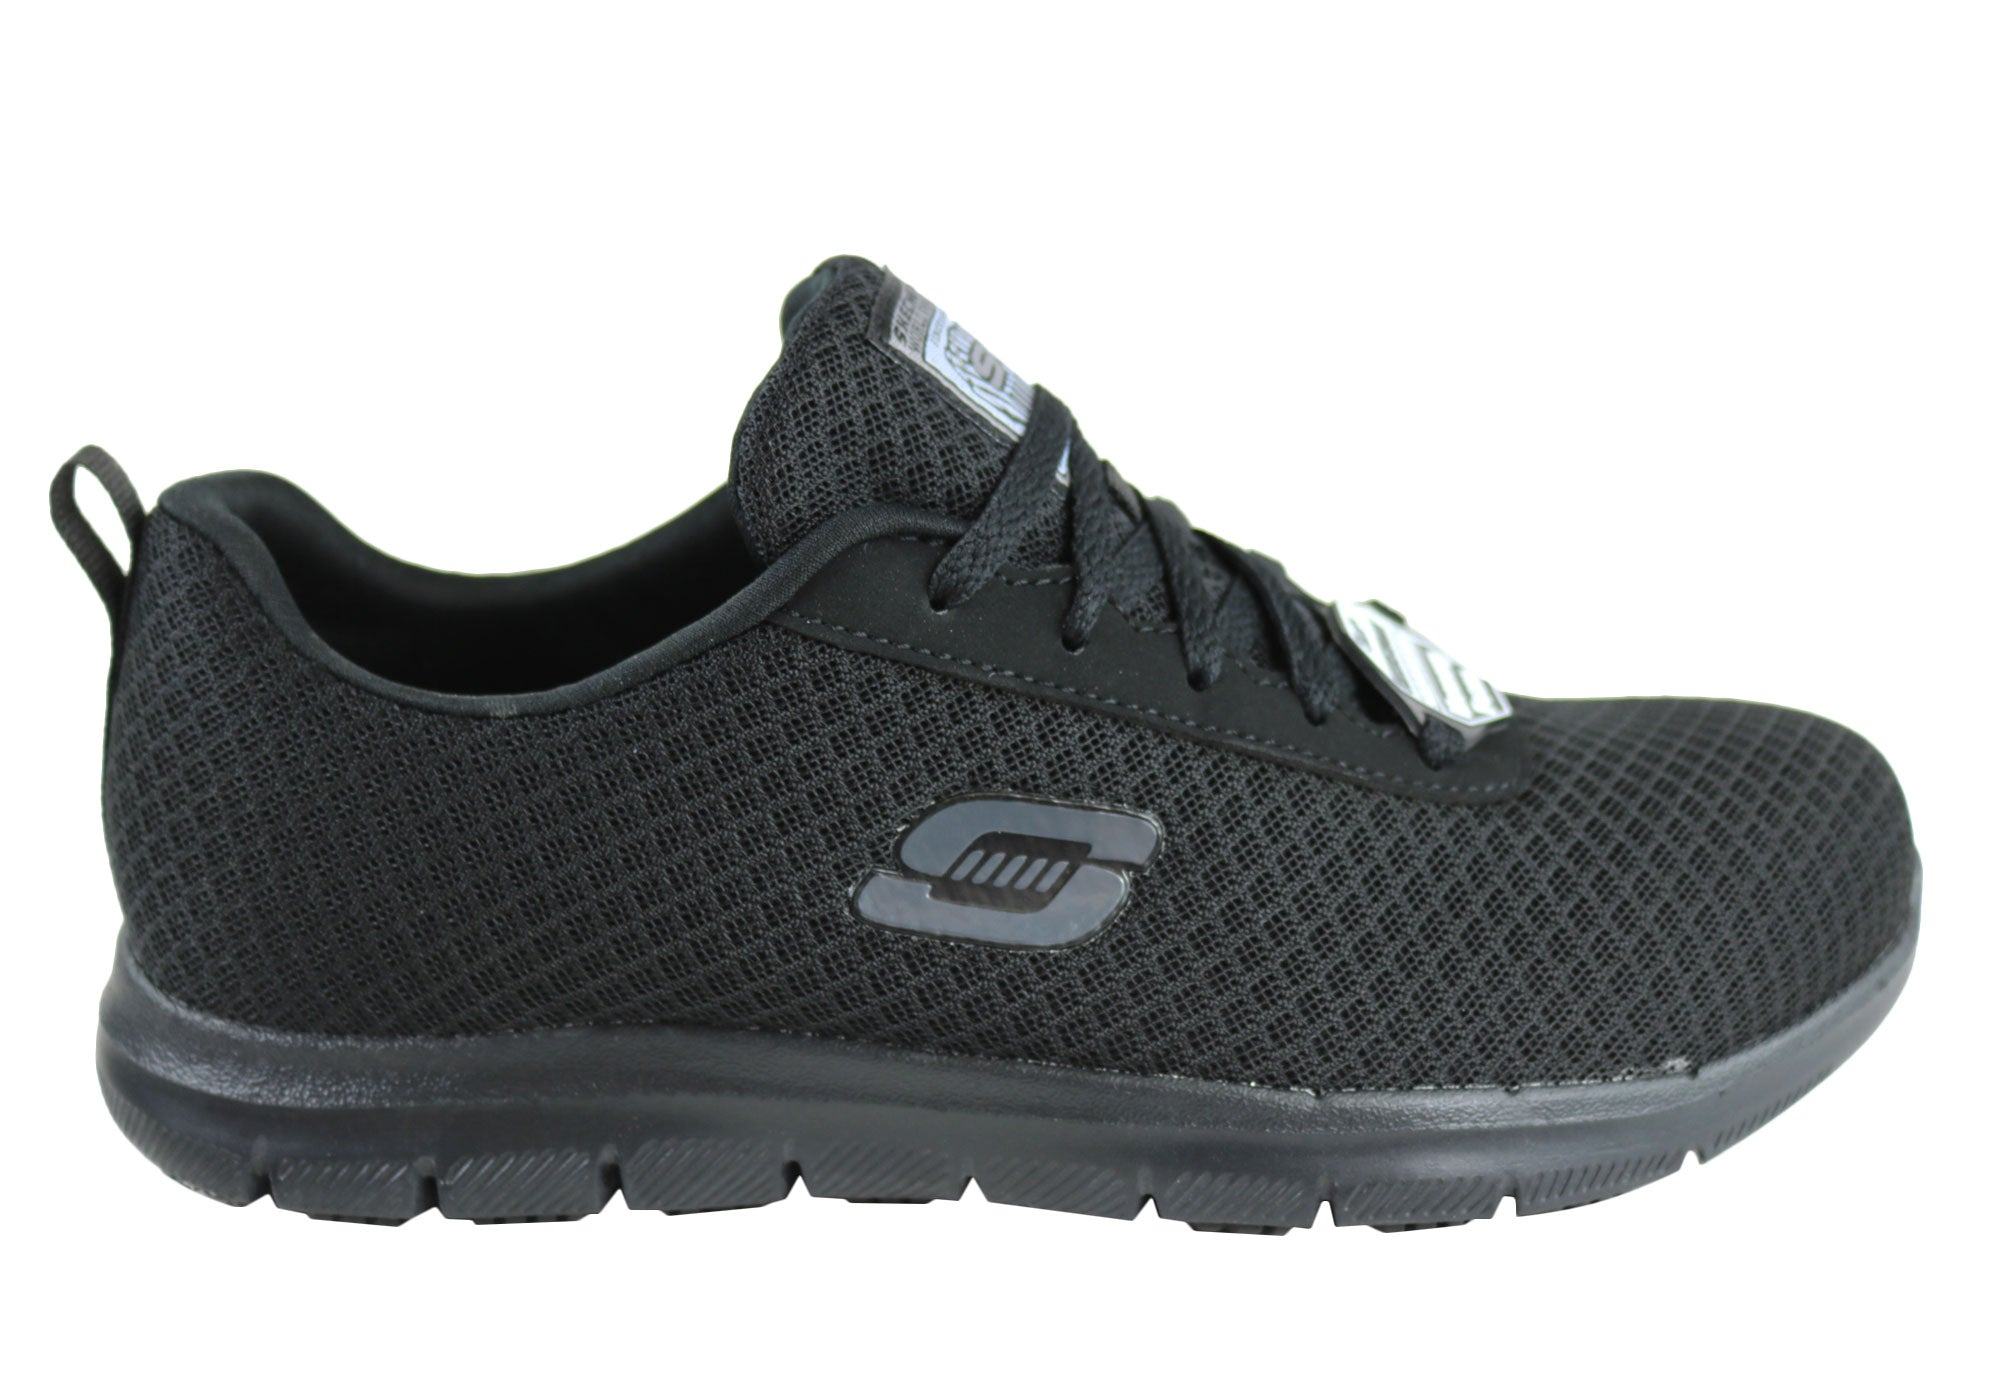 limited price better price for select for newest Skechers Womens Ghenter Bronaugh Comfort Slip Resistant Work Shoes